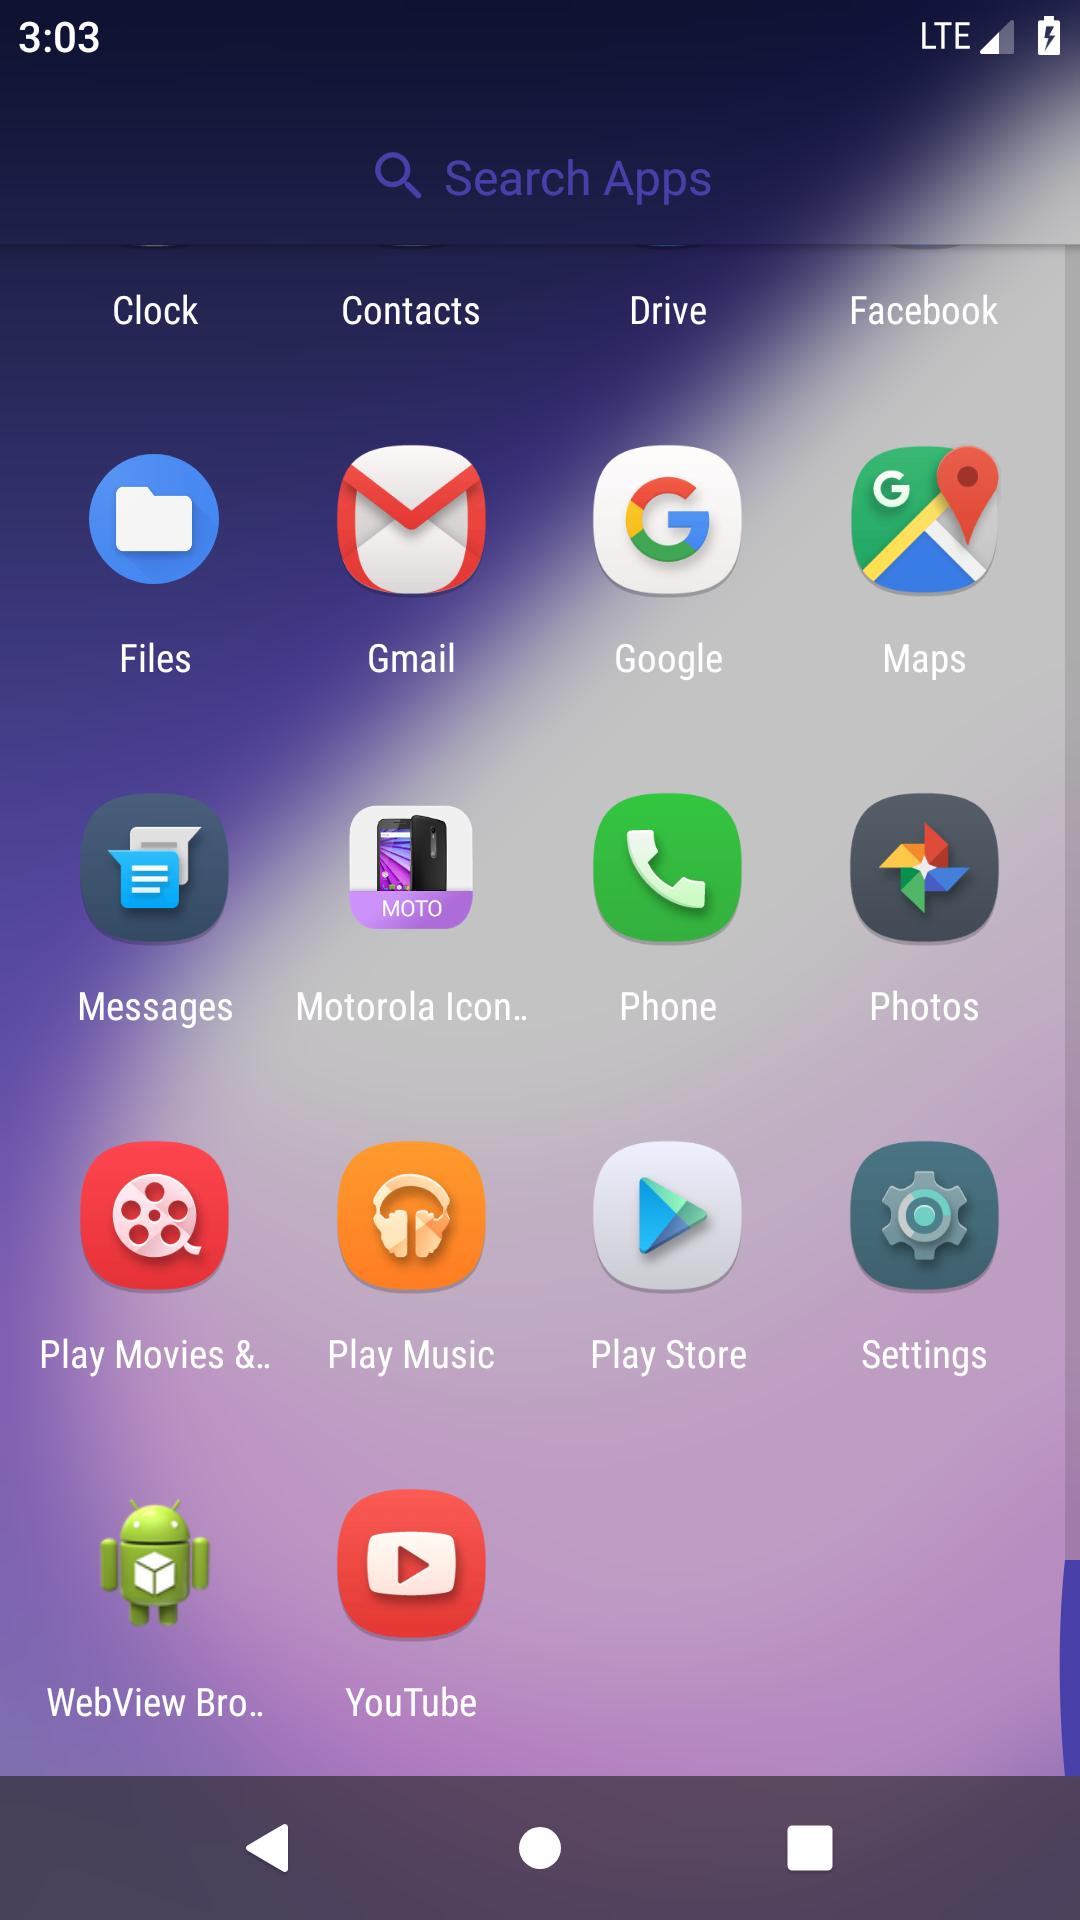 Launcher for motorola -Moto G5 Plus Launcher Theme for Android - APK